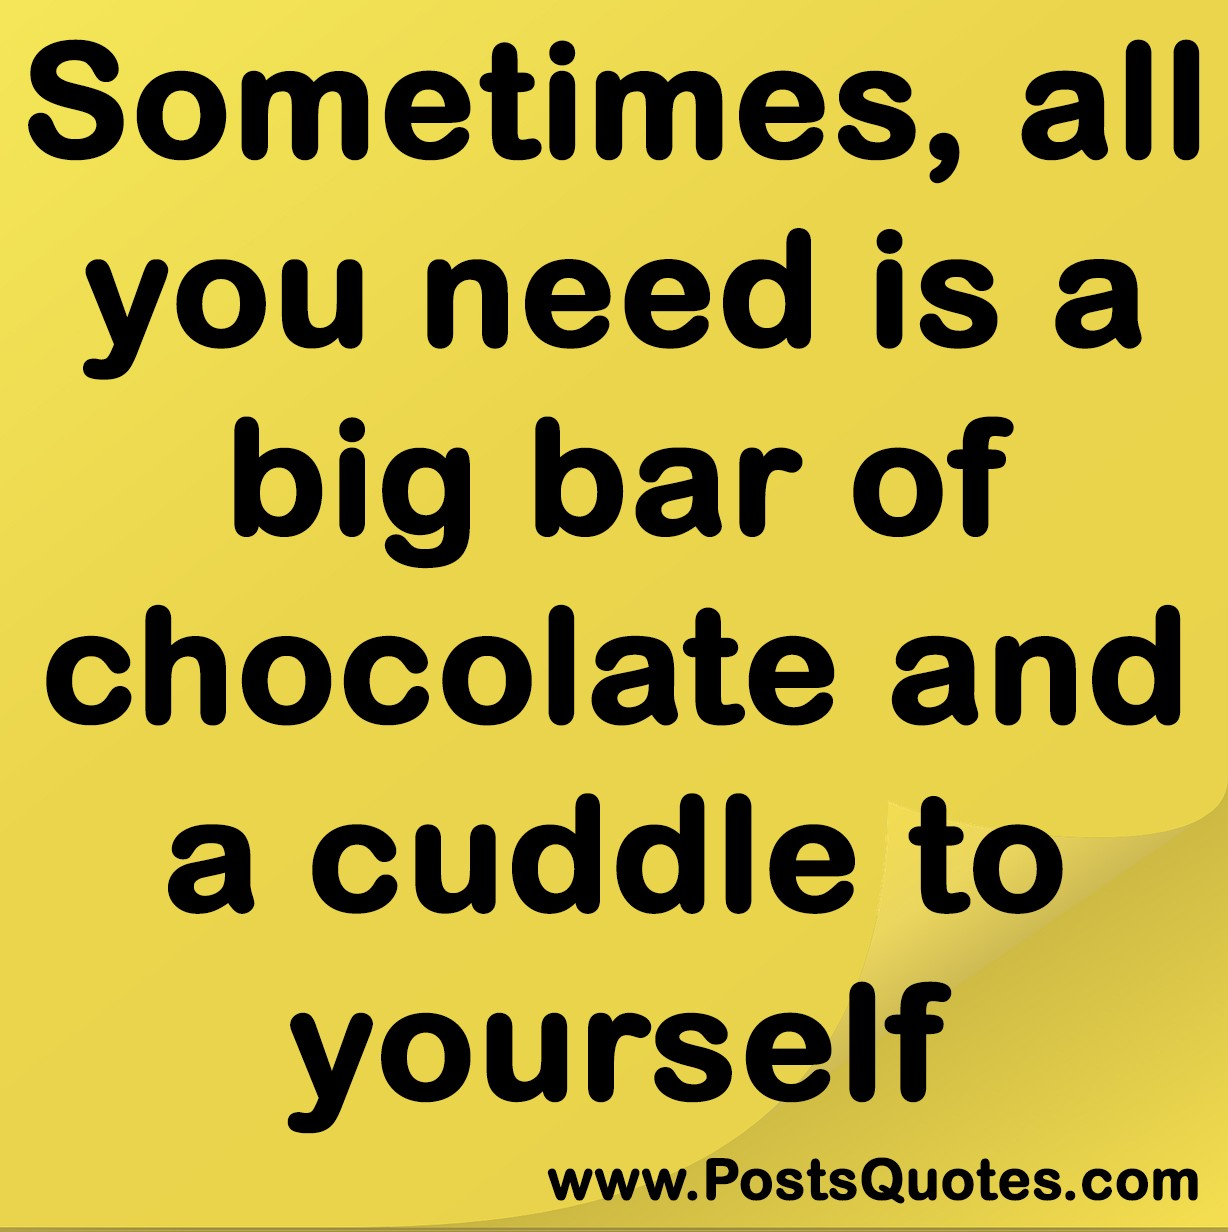 Sometimes, All You Need Is A Big Bar Of Chocolate And A Cuddle To Yourself.